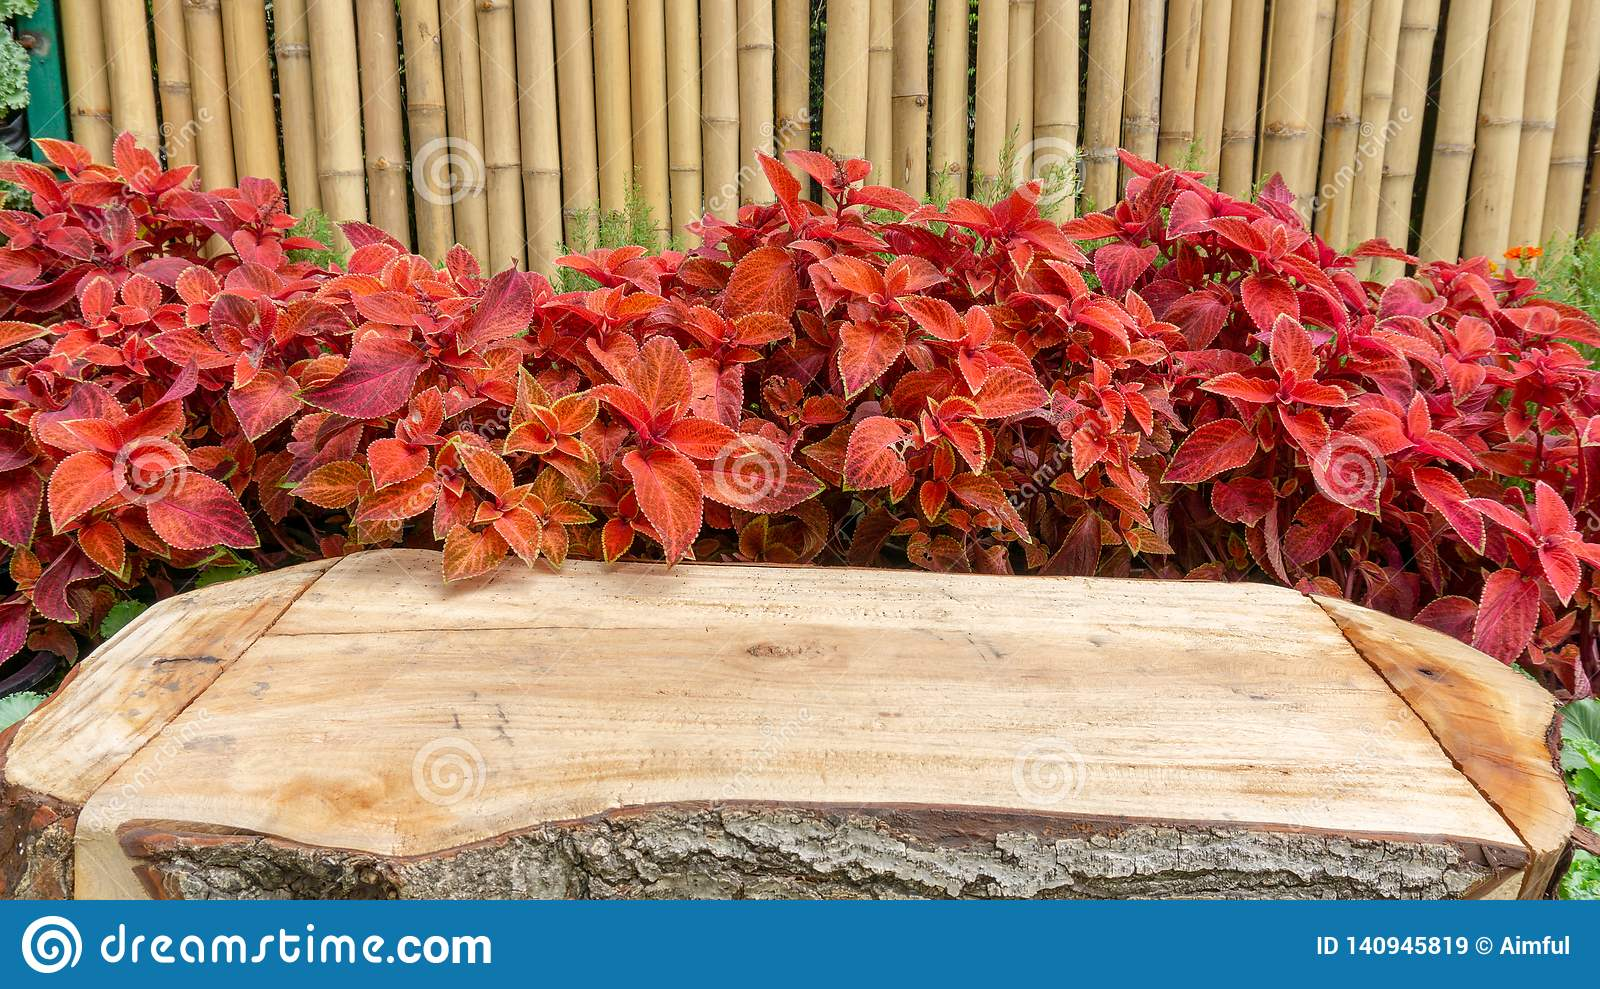 Rustic brown wooden table on red leaves of Painted nettle or Colues plant and yellow bamboo trunk on background